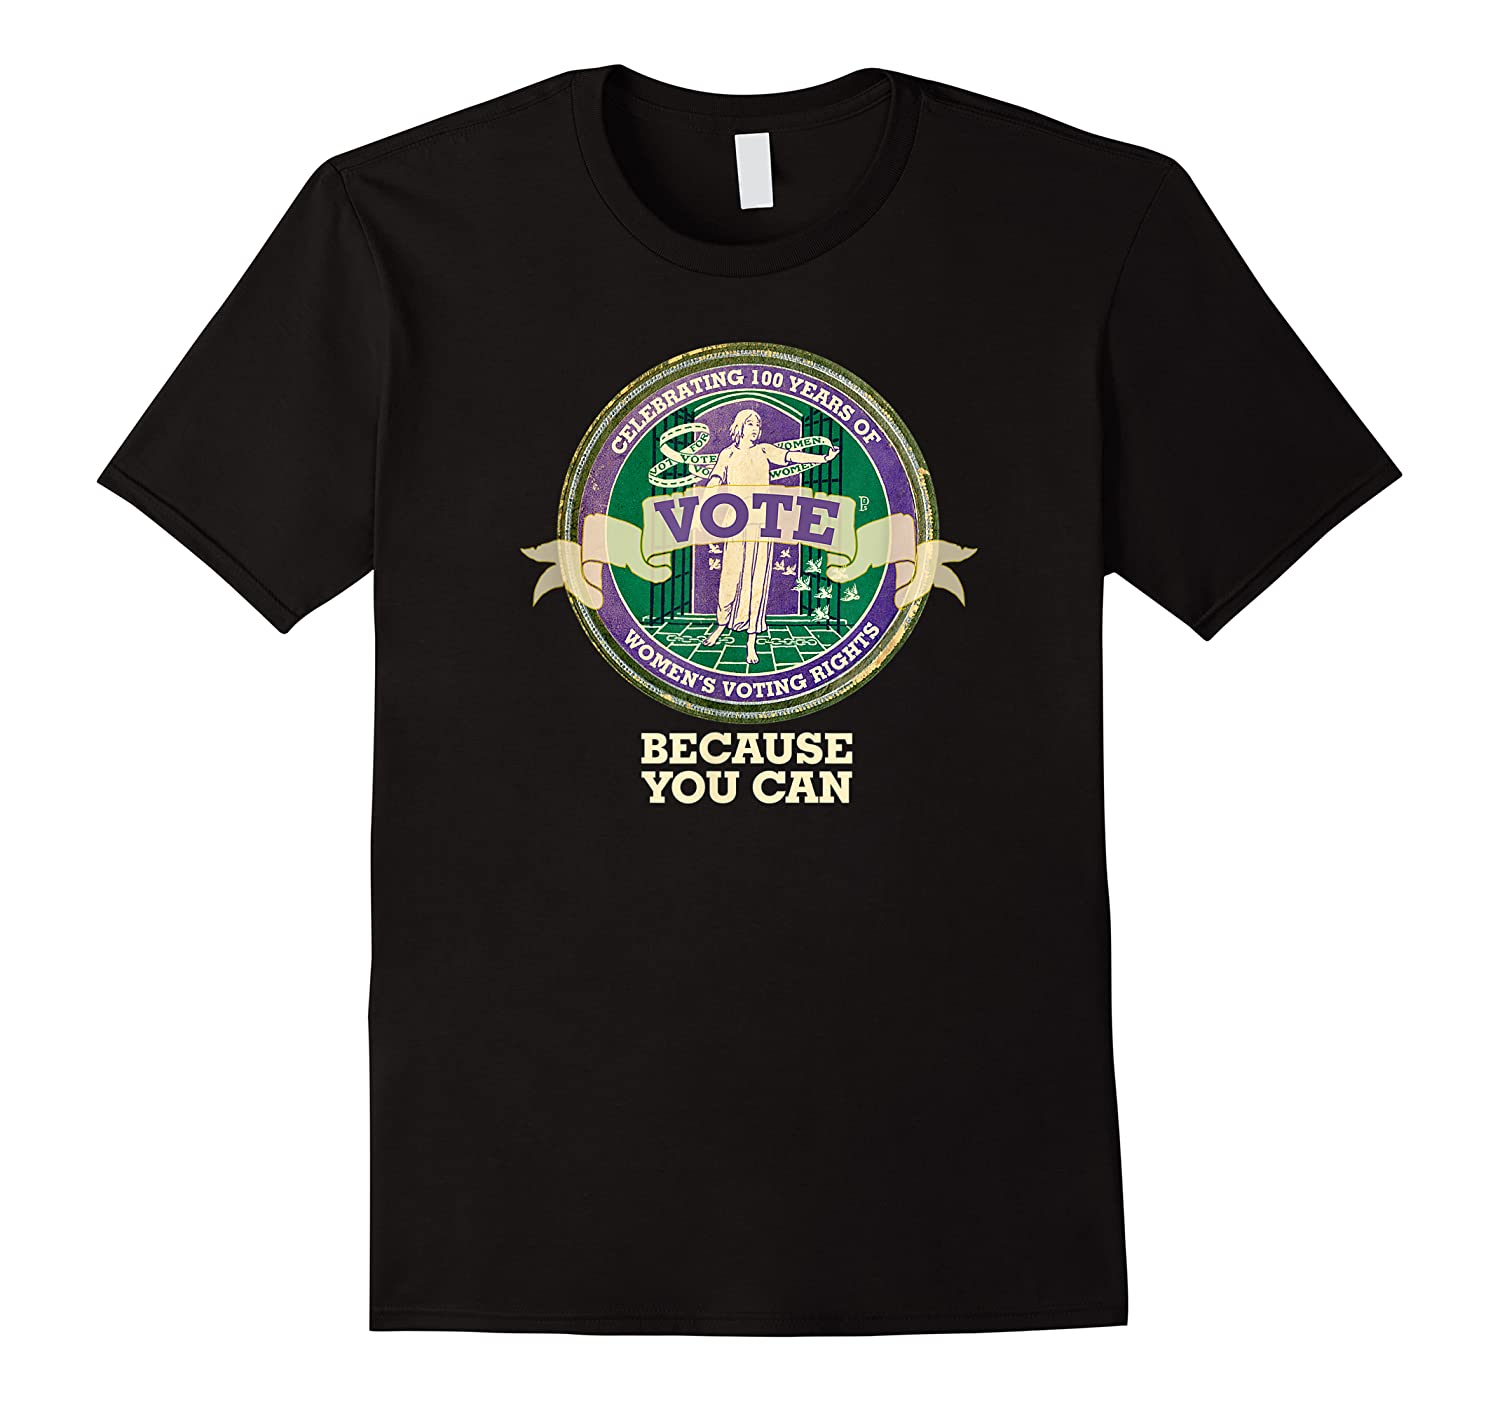 Suffragette Celebration 100 Years Women's Right To Vote Gift Shirts